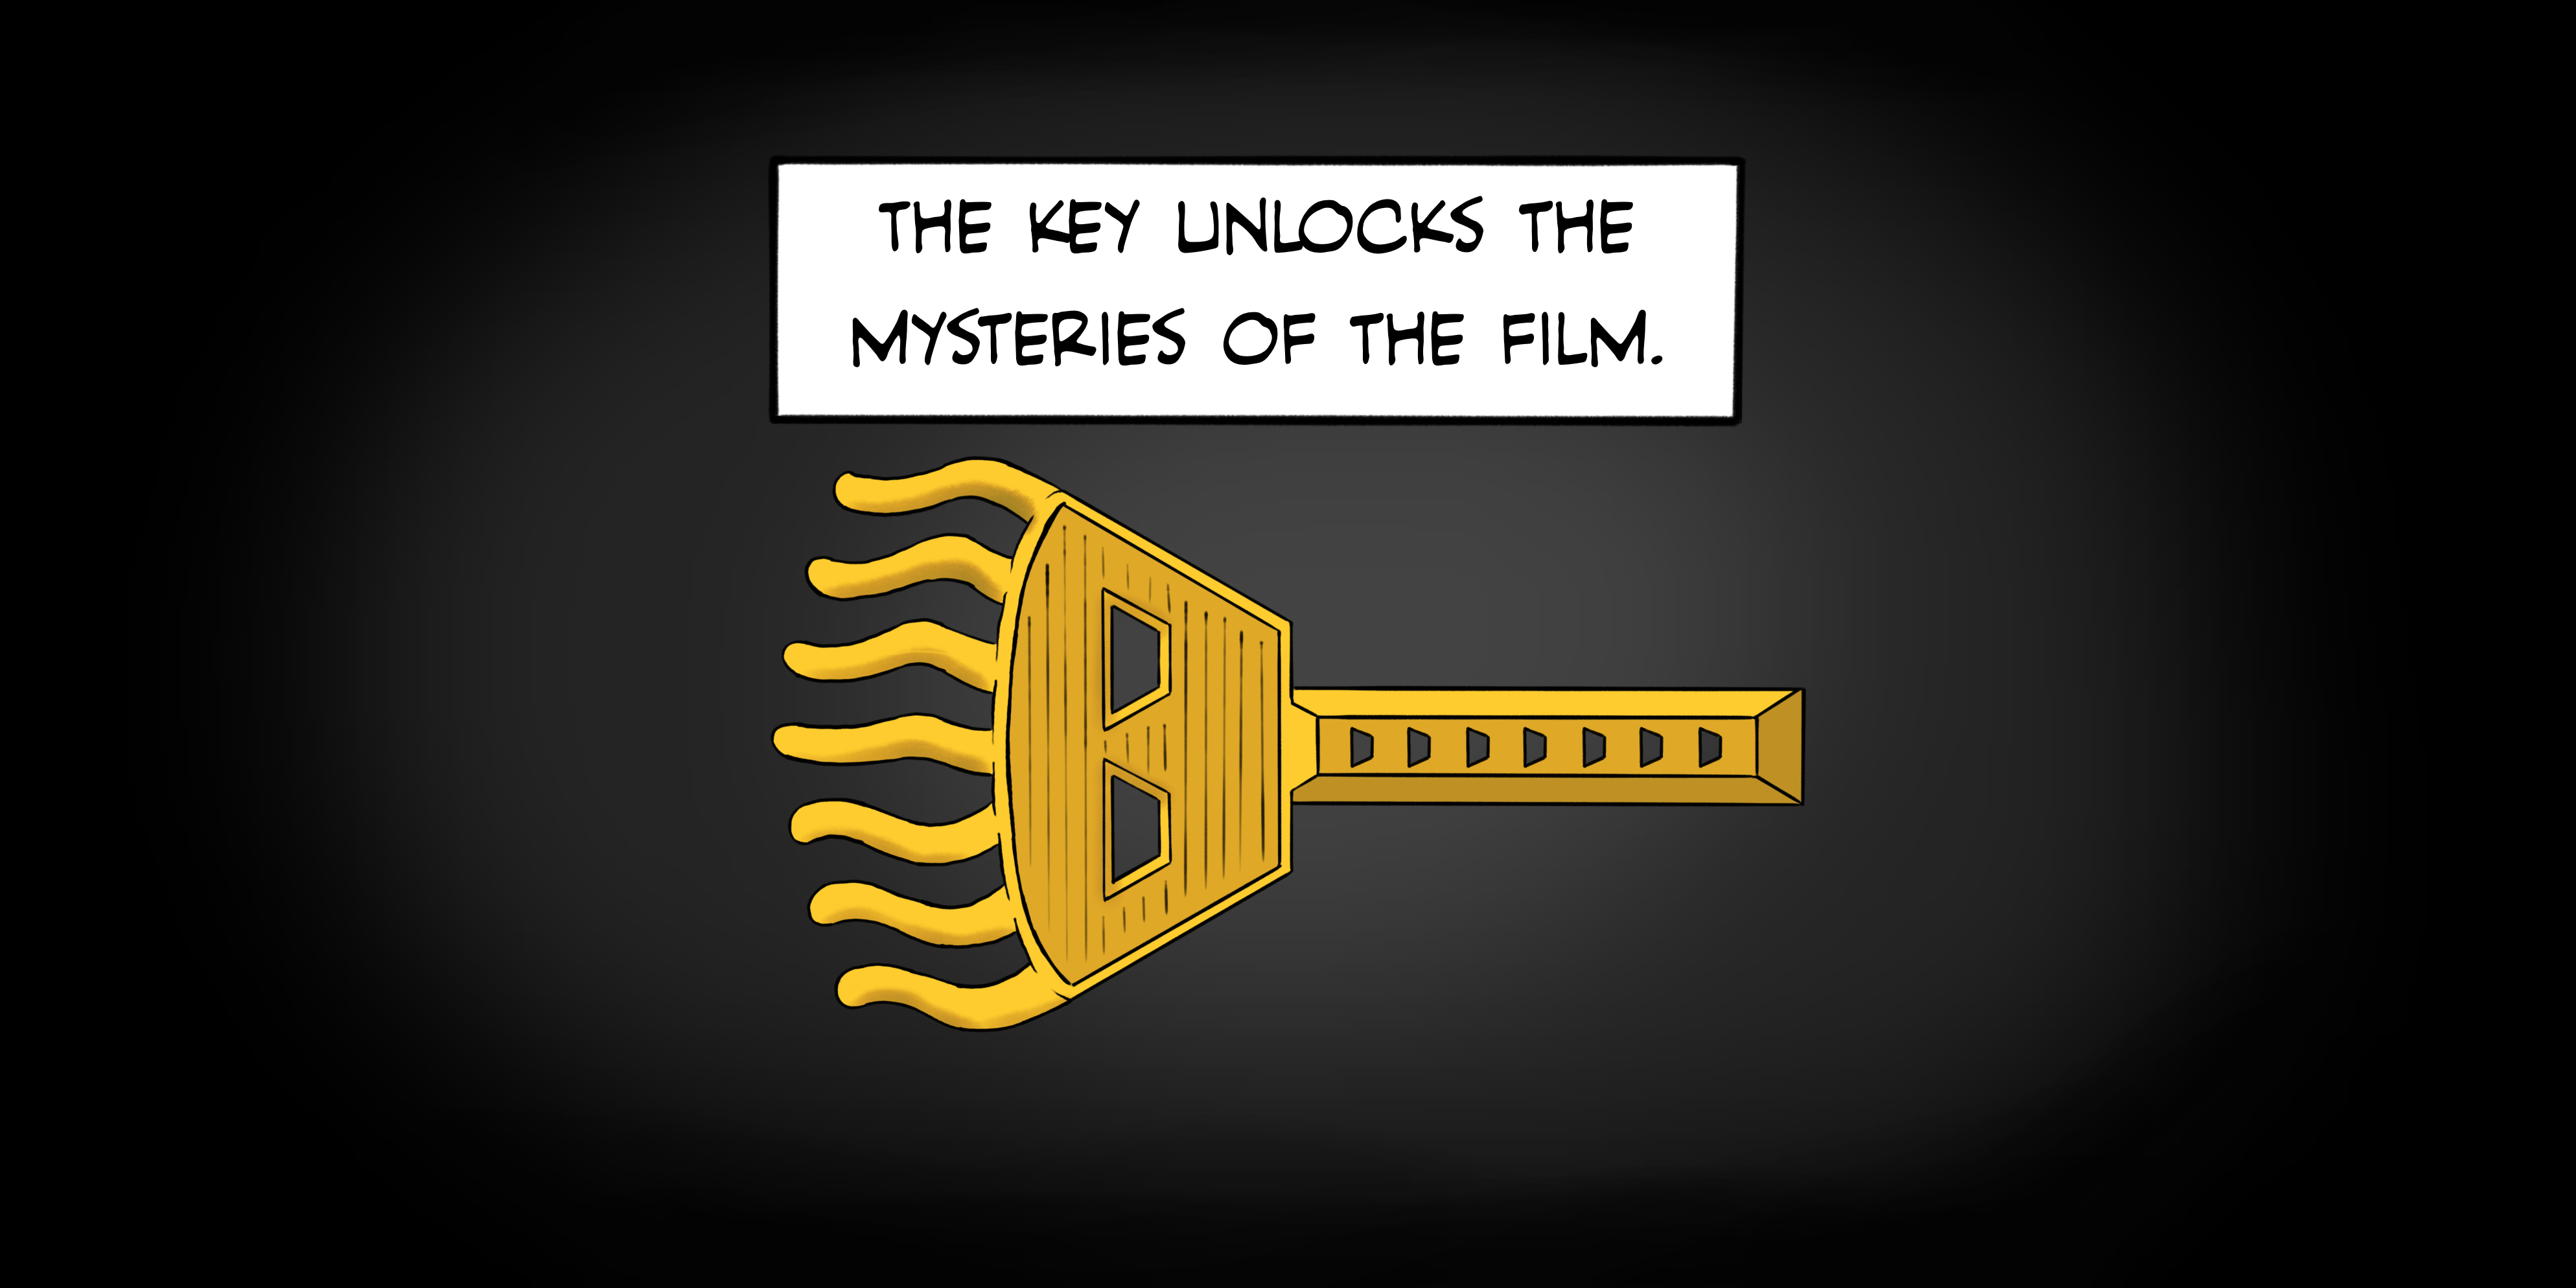 The Key unlocks the mysteries of the film.